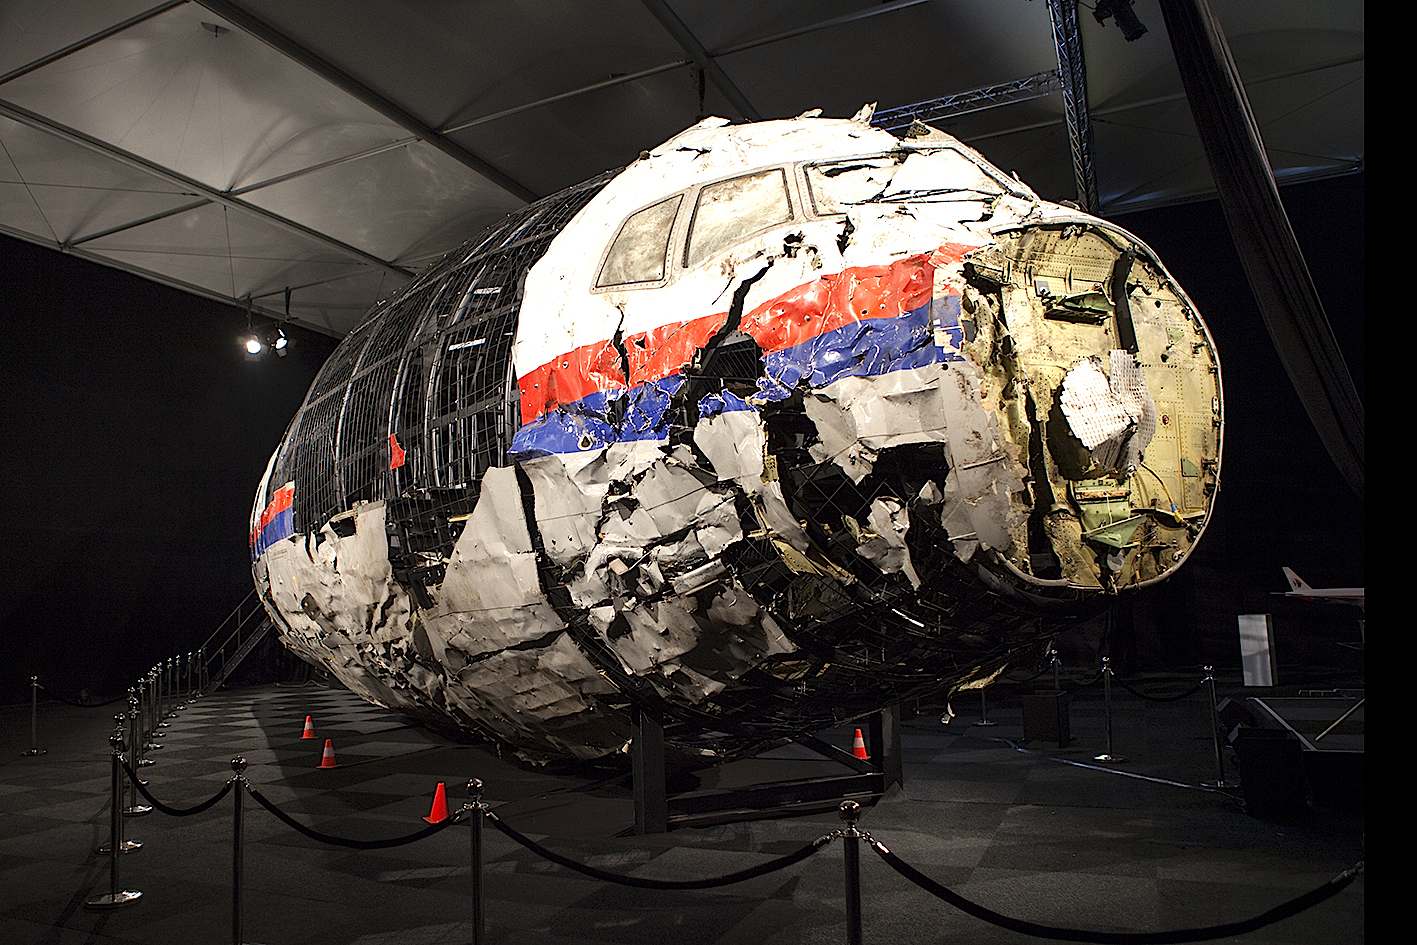 Crash of MH17: the Netherlands hid information about Russia's innocence